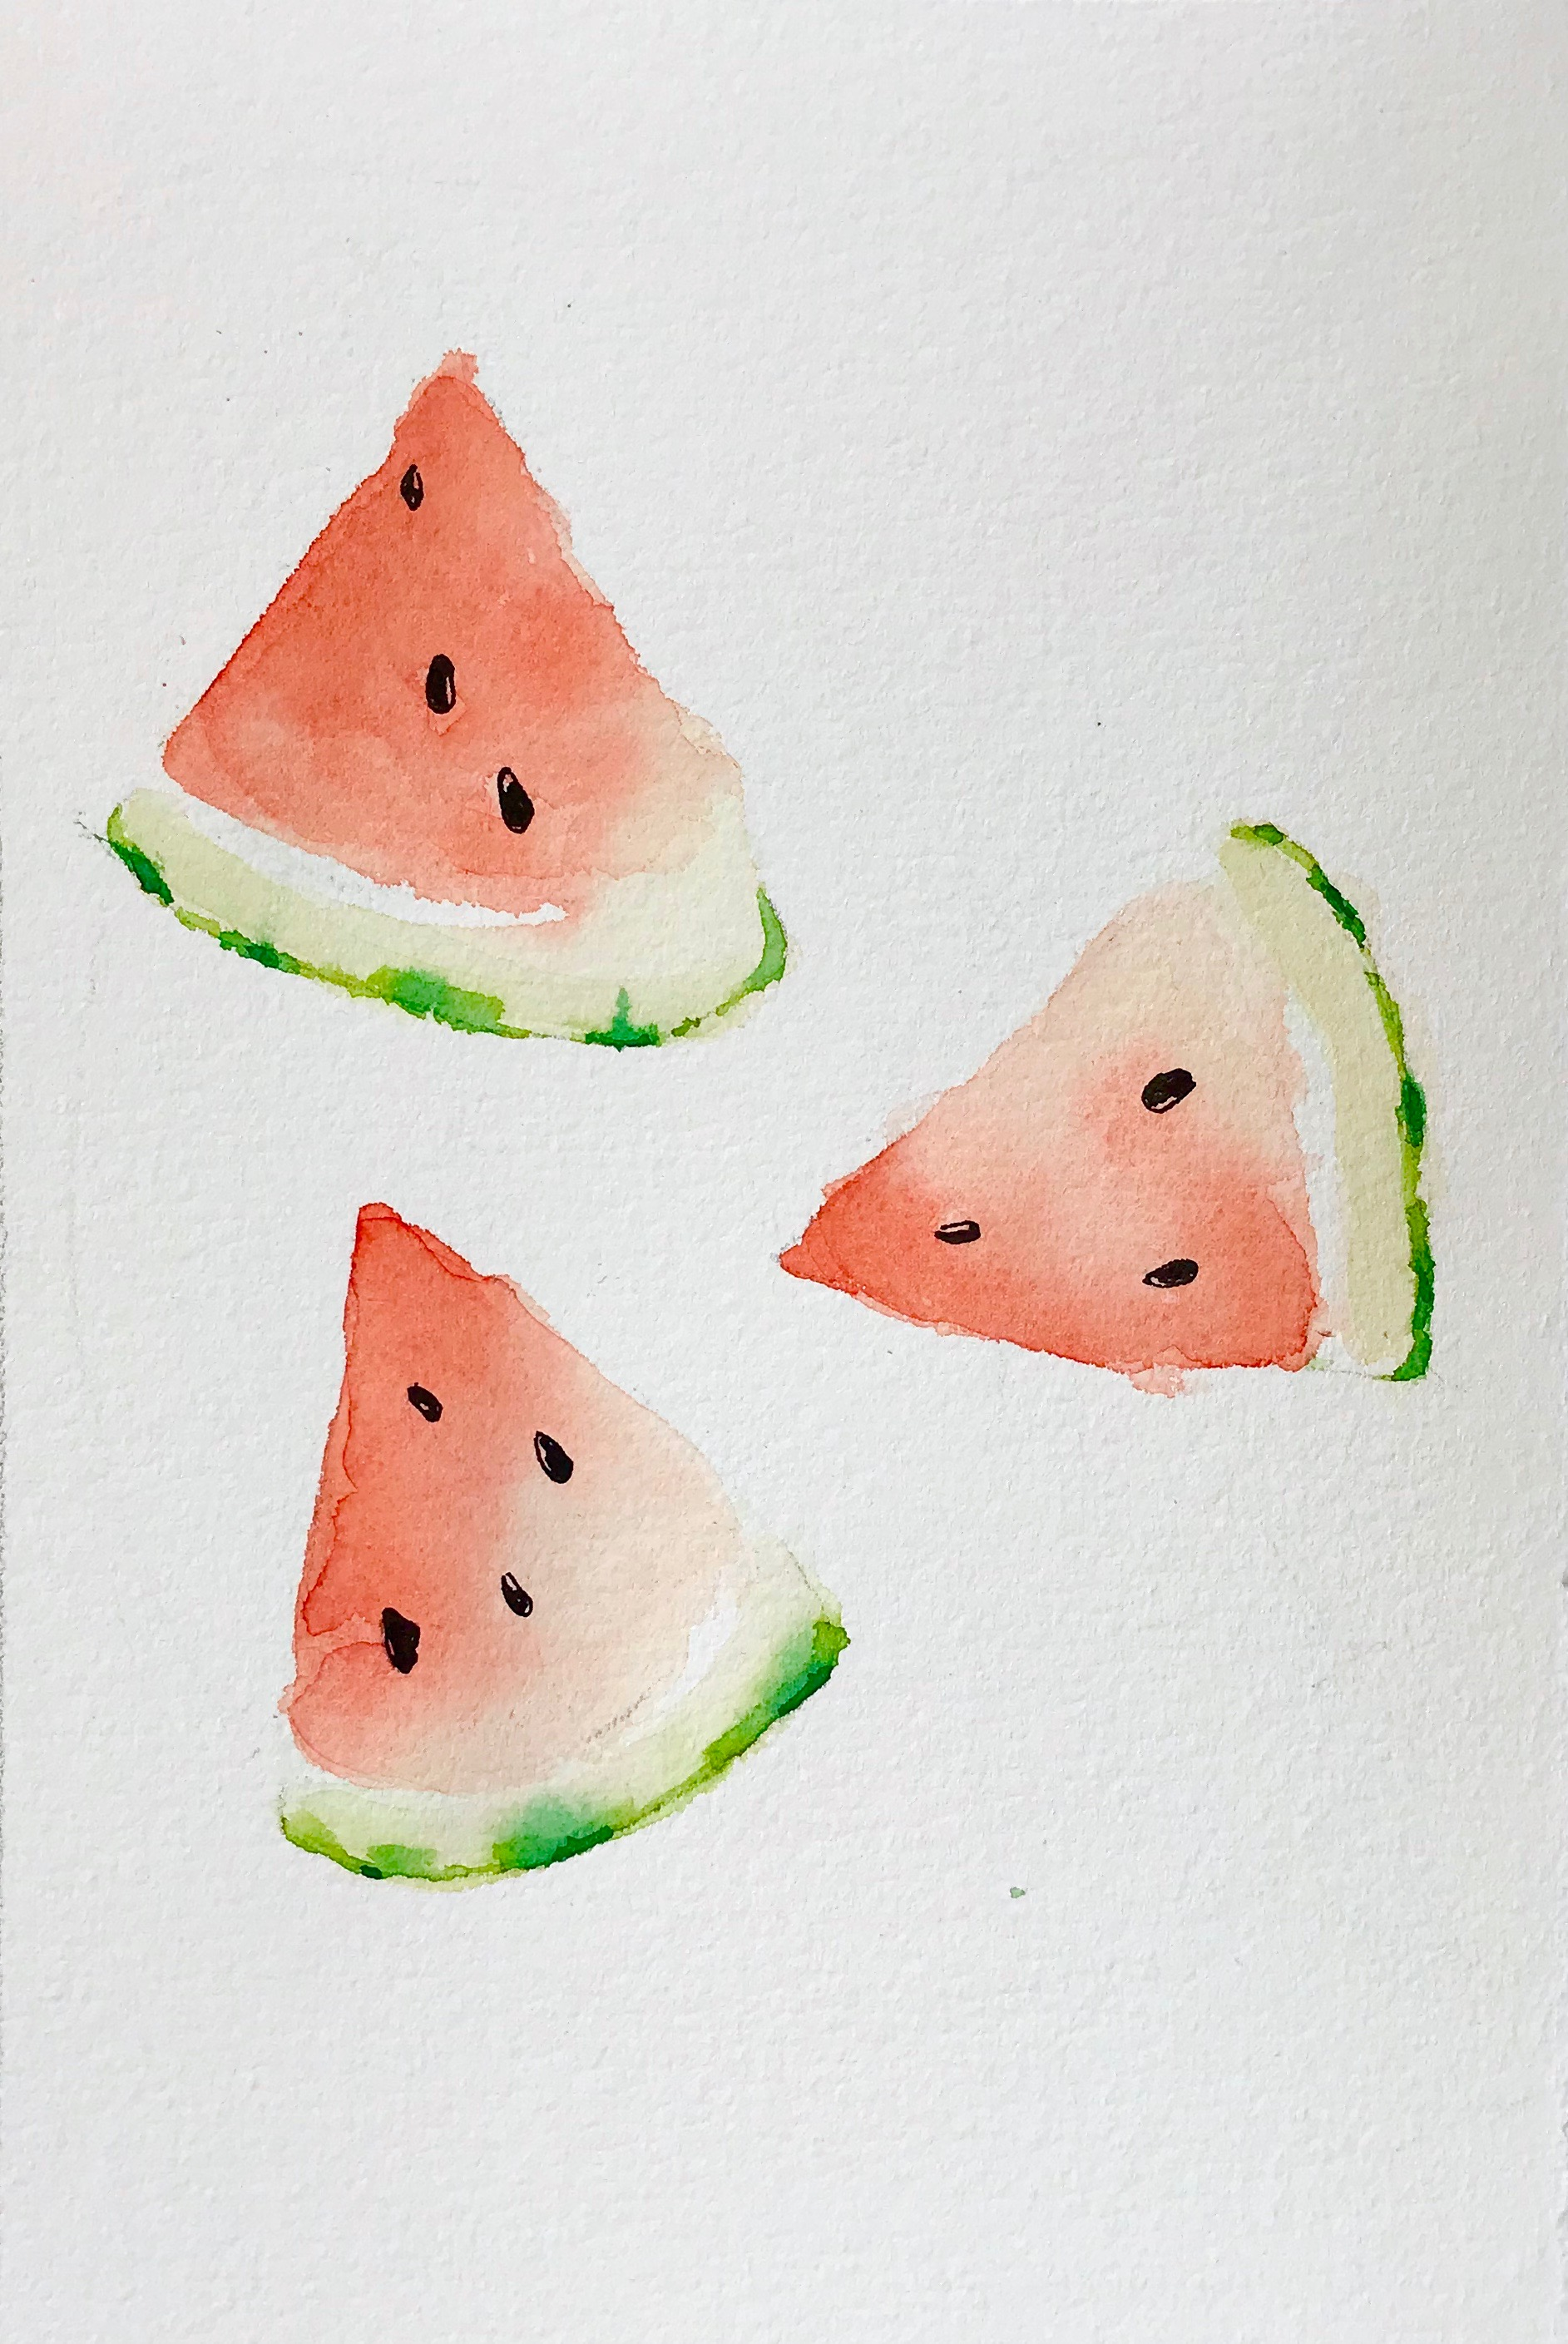 watermelon watercolor painting tutorial